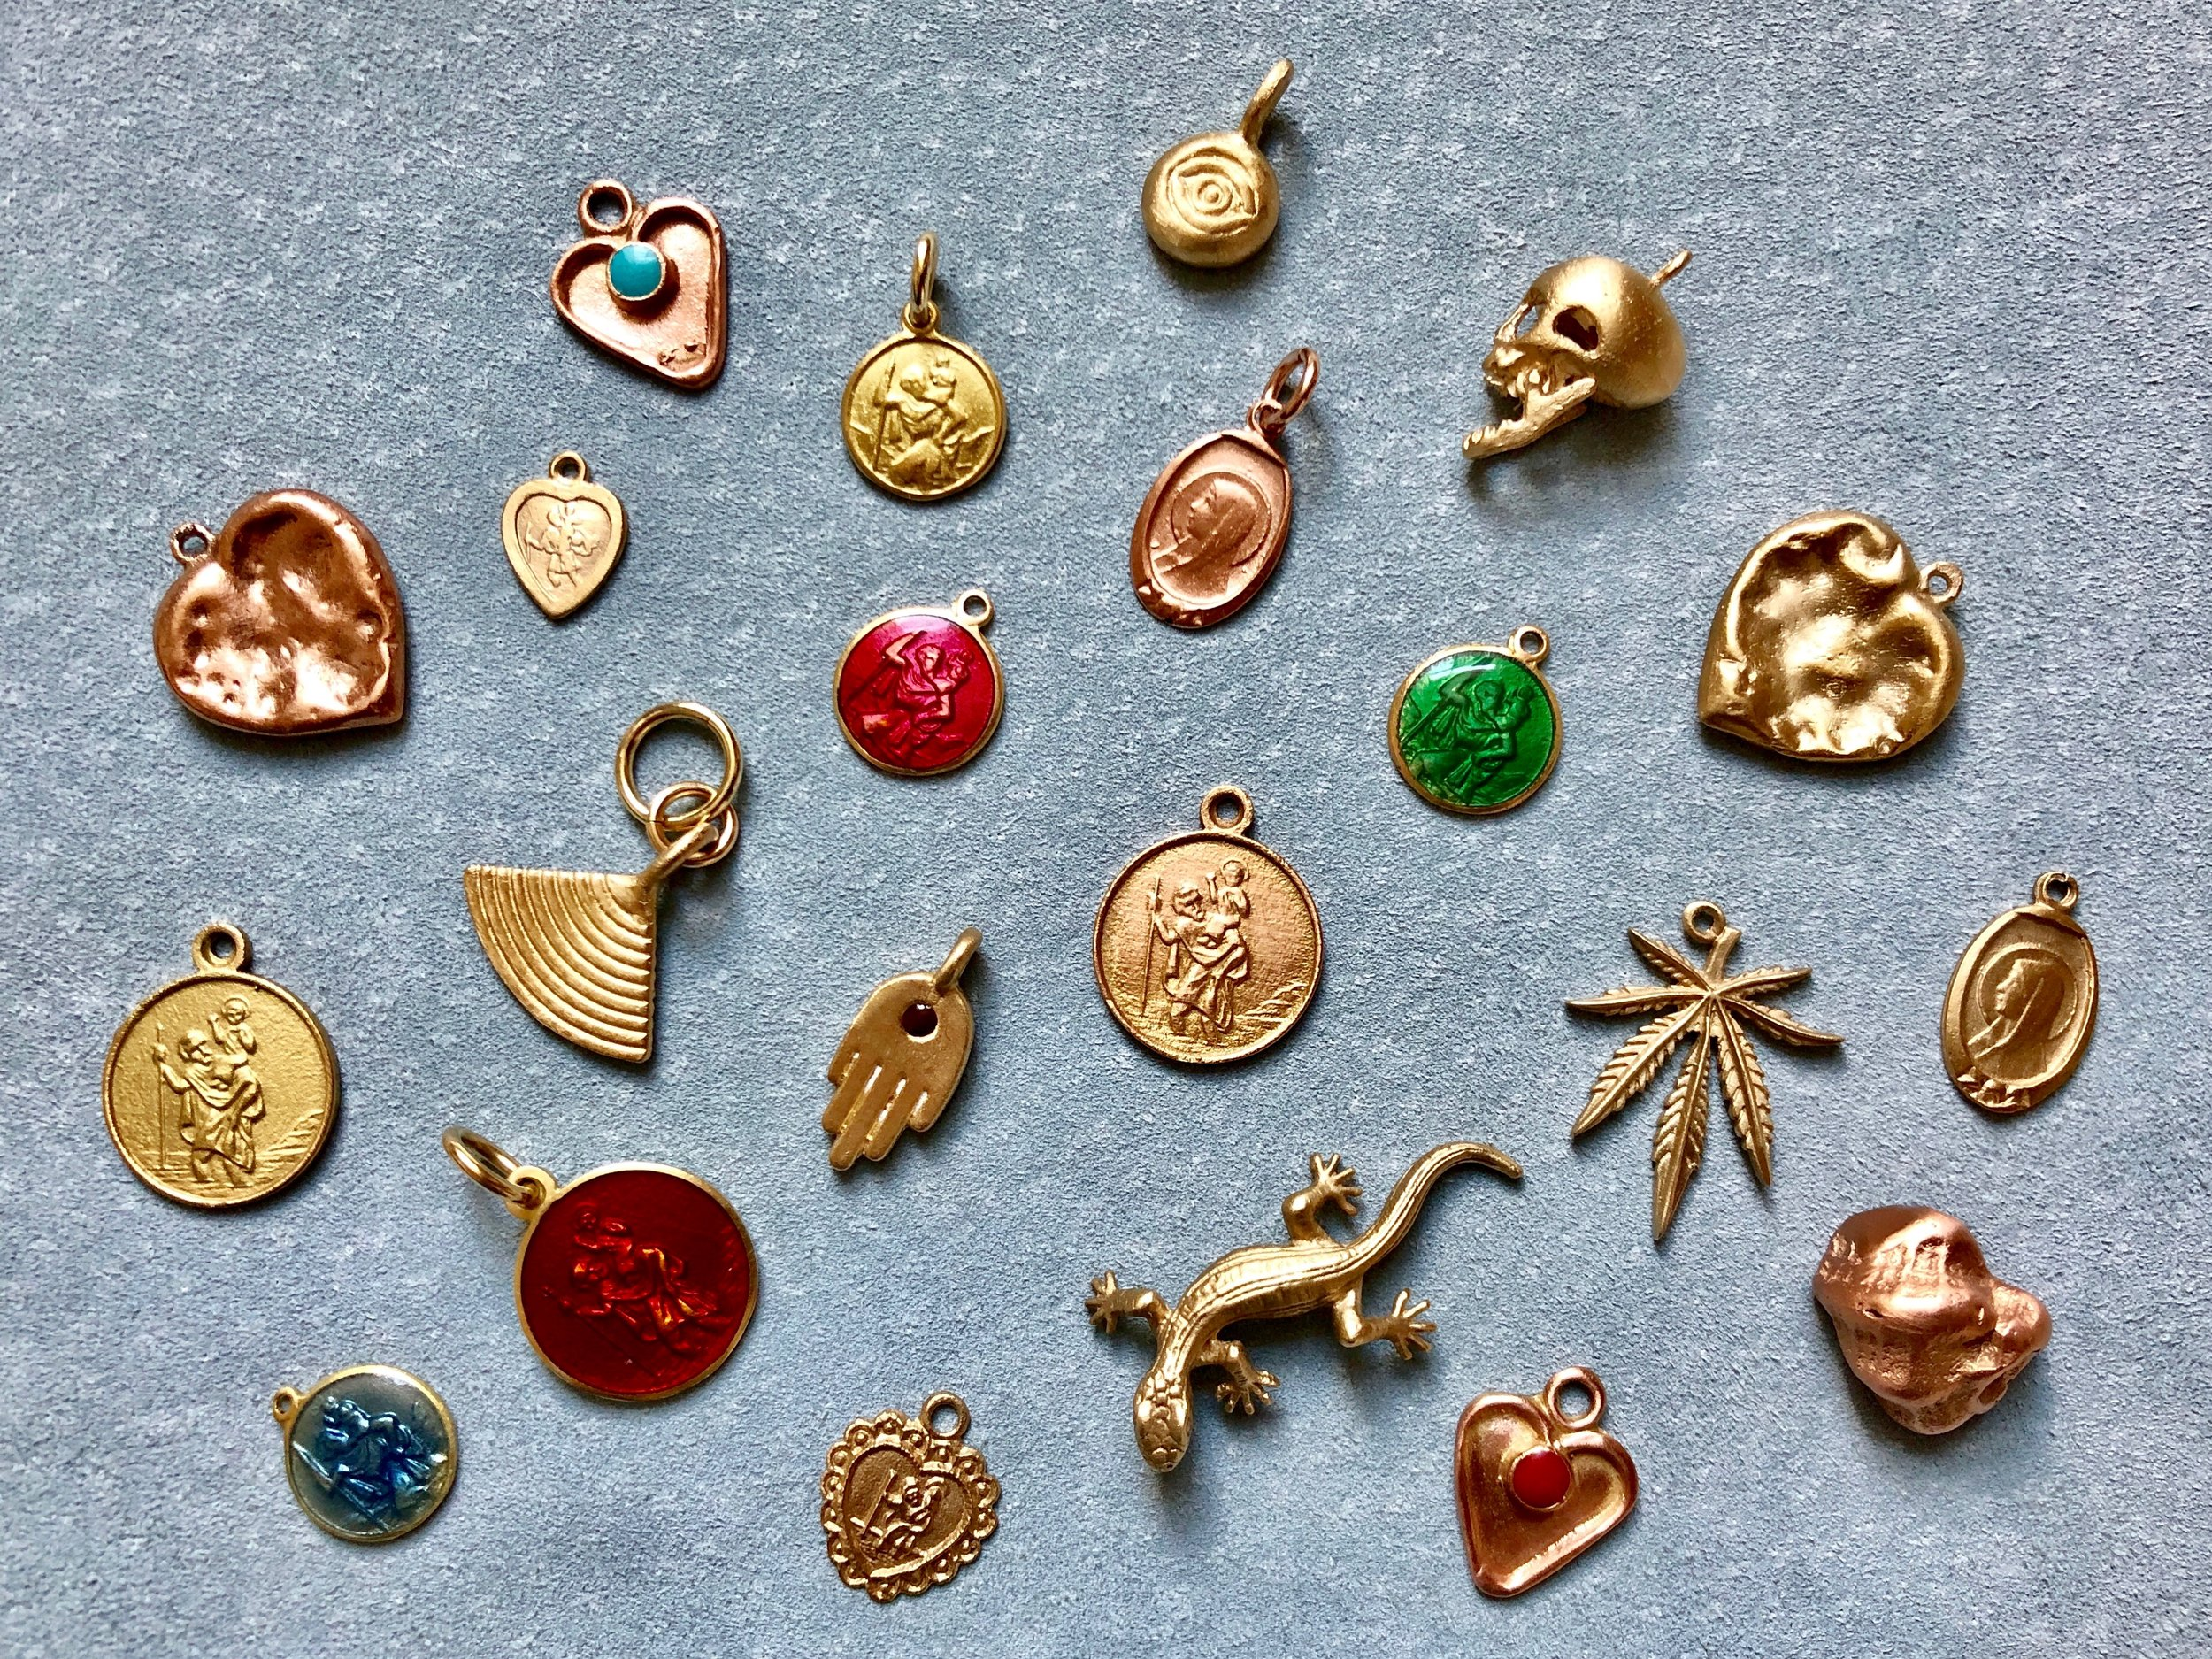 COLLECTION OF HANDMADE CHARMS